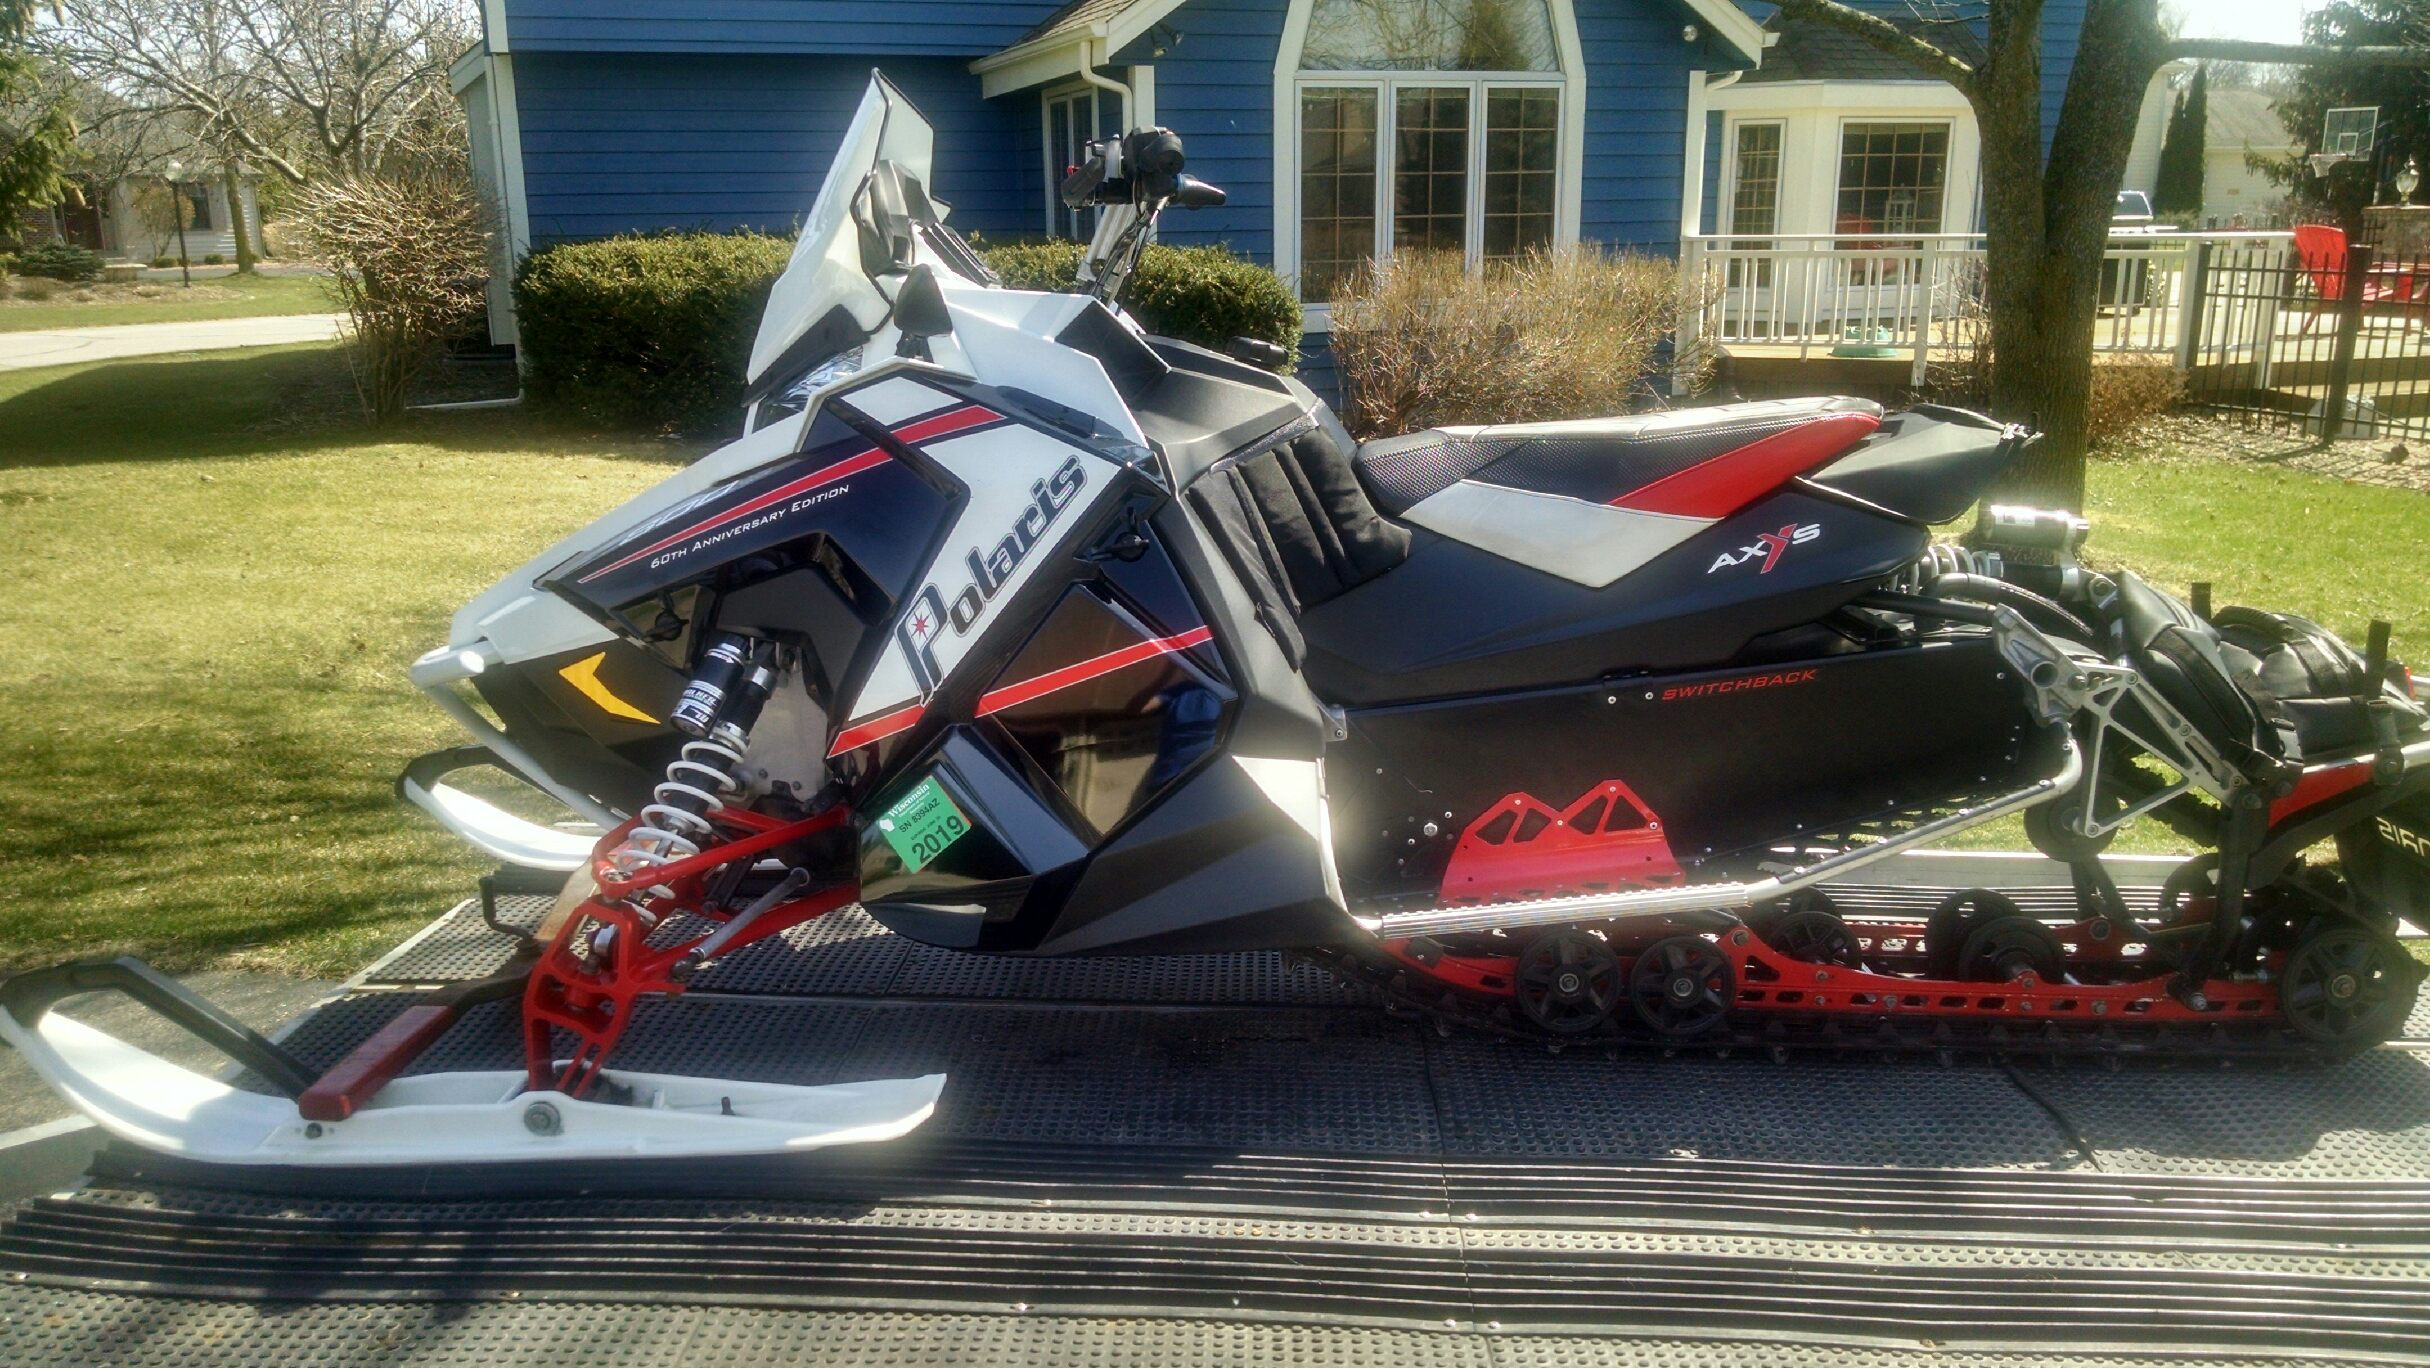 For Sale / Wanted – Jefferson County Snowmobile Alliance